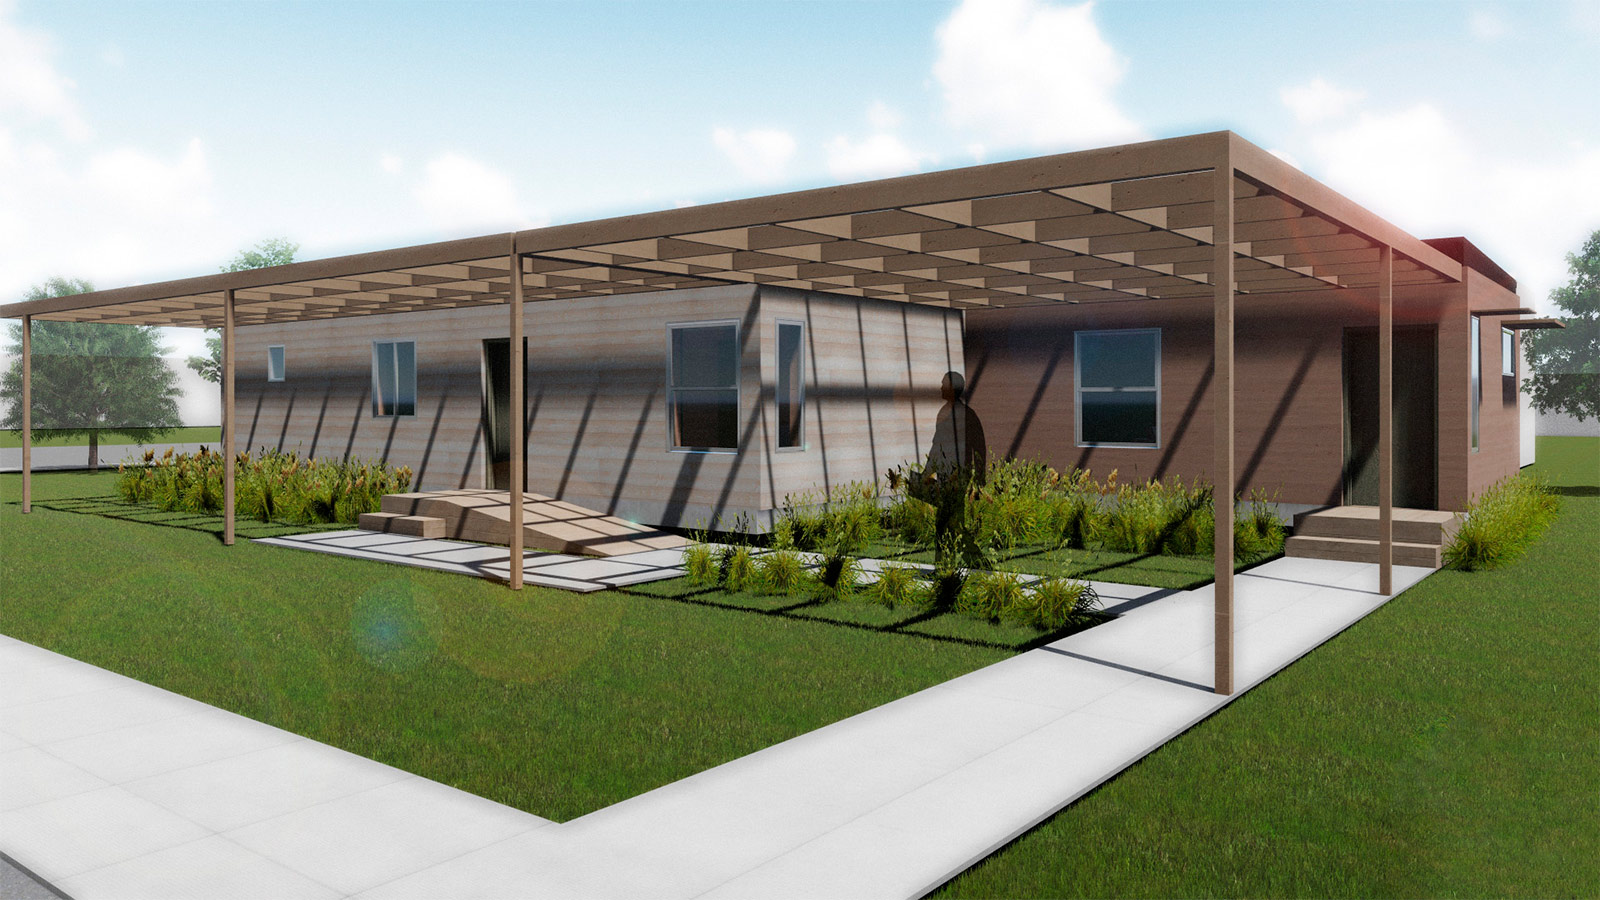 Exterior rendering of ADAPTHOUSE. To maintain net-zero status, the home utilizes climate-conscious construction methods and advanced solar technology.